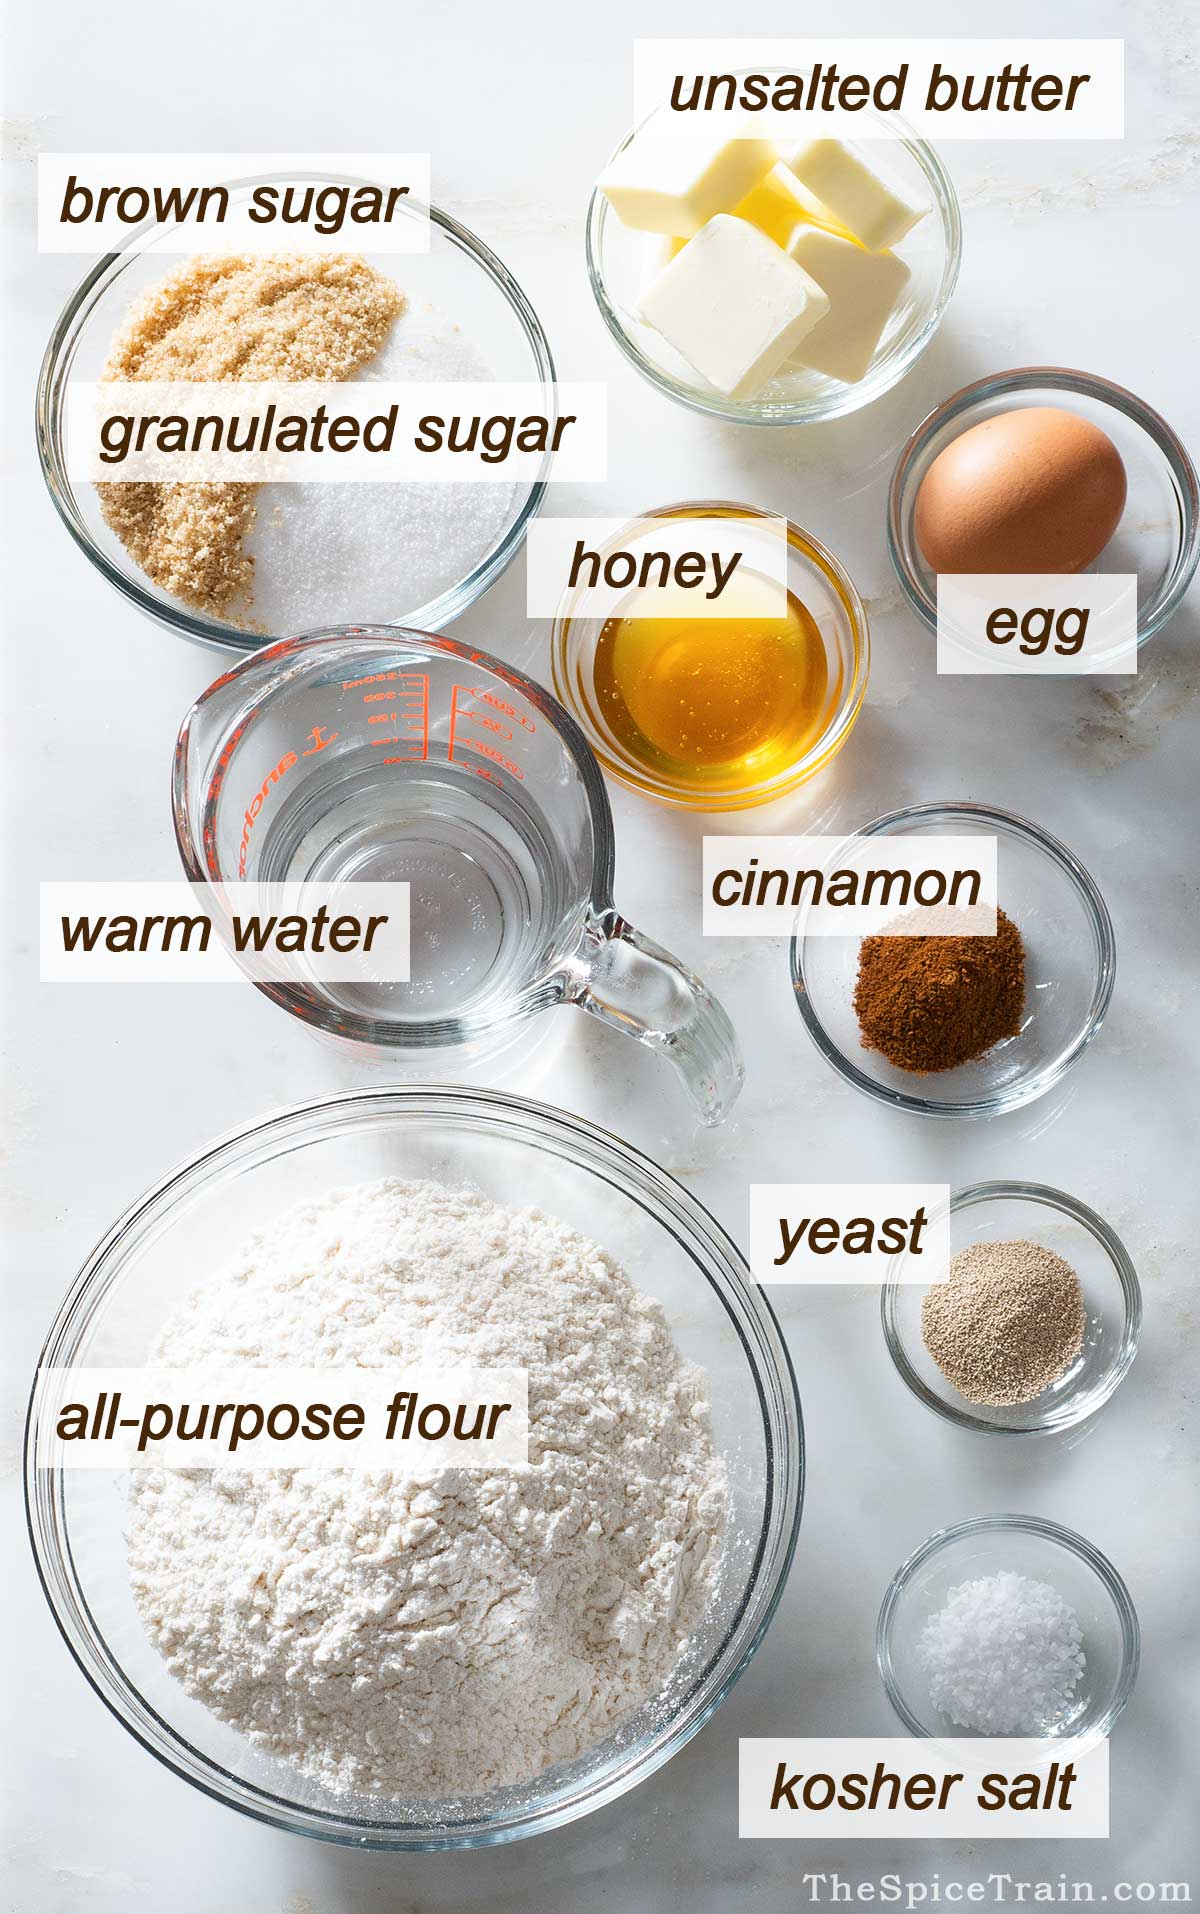 Cinnamon roll ingredients on a kitchen counter.